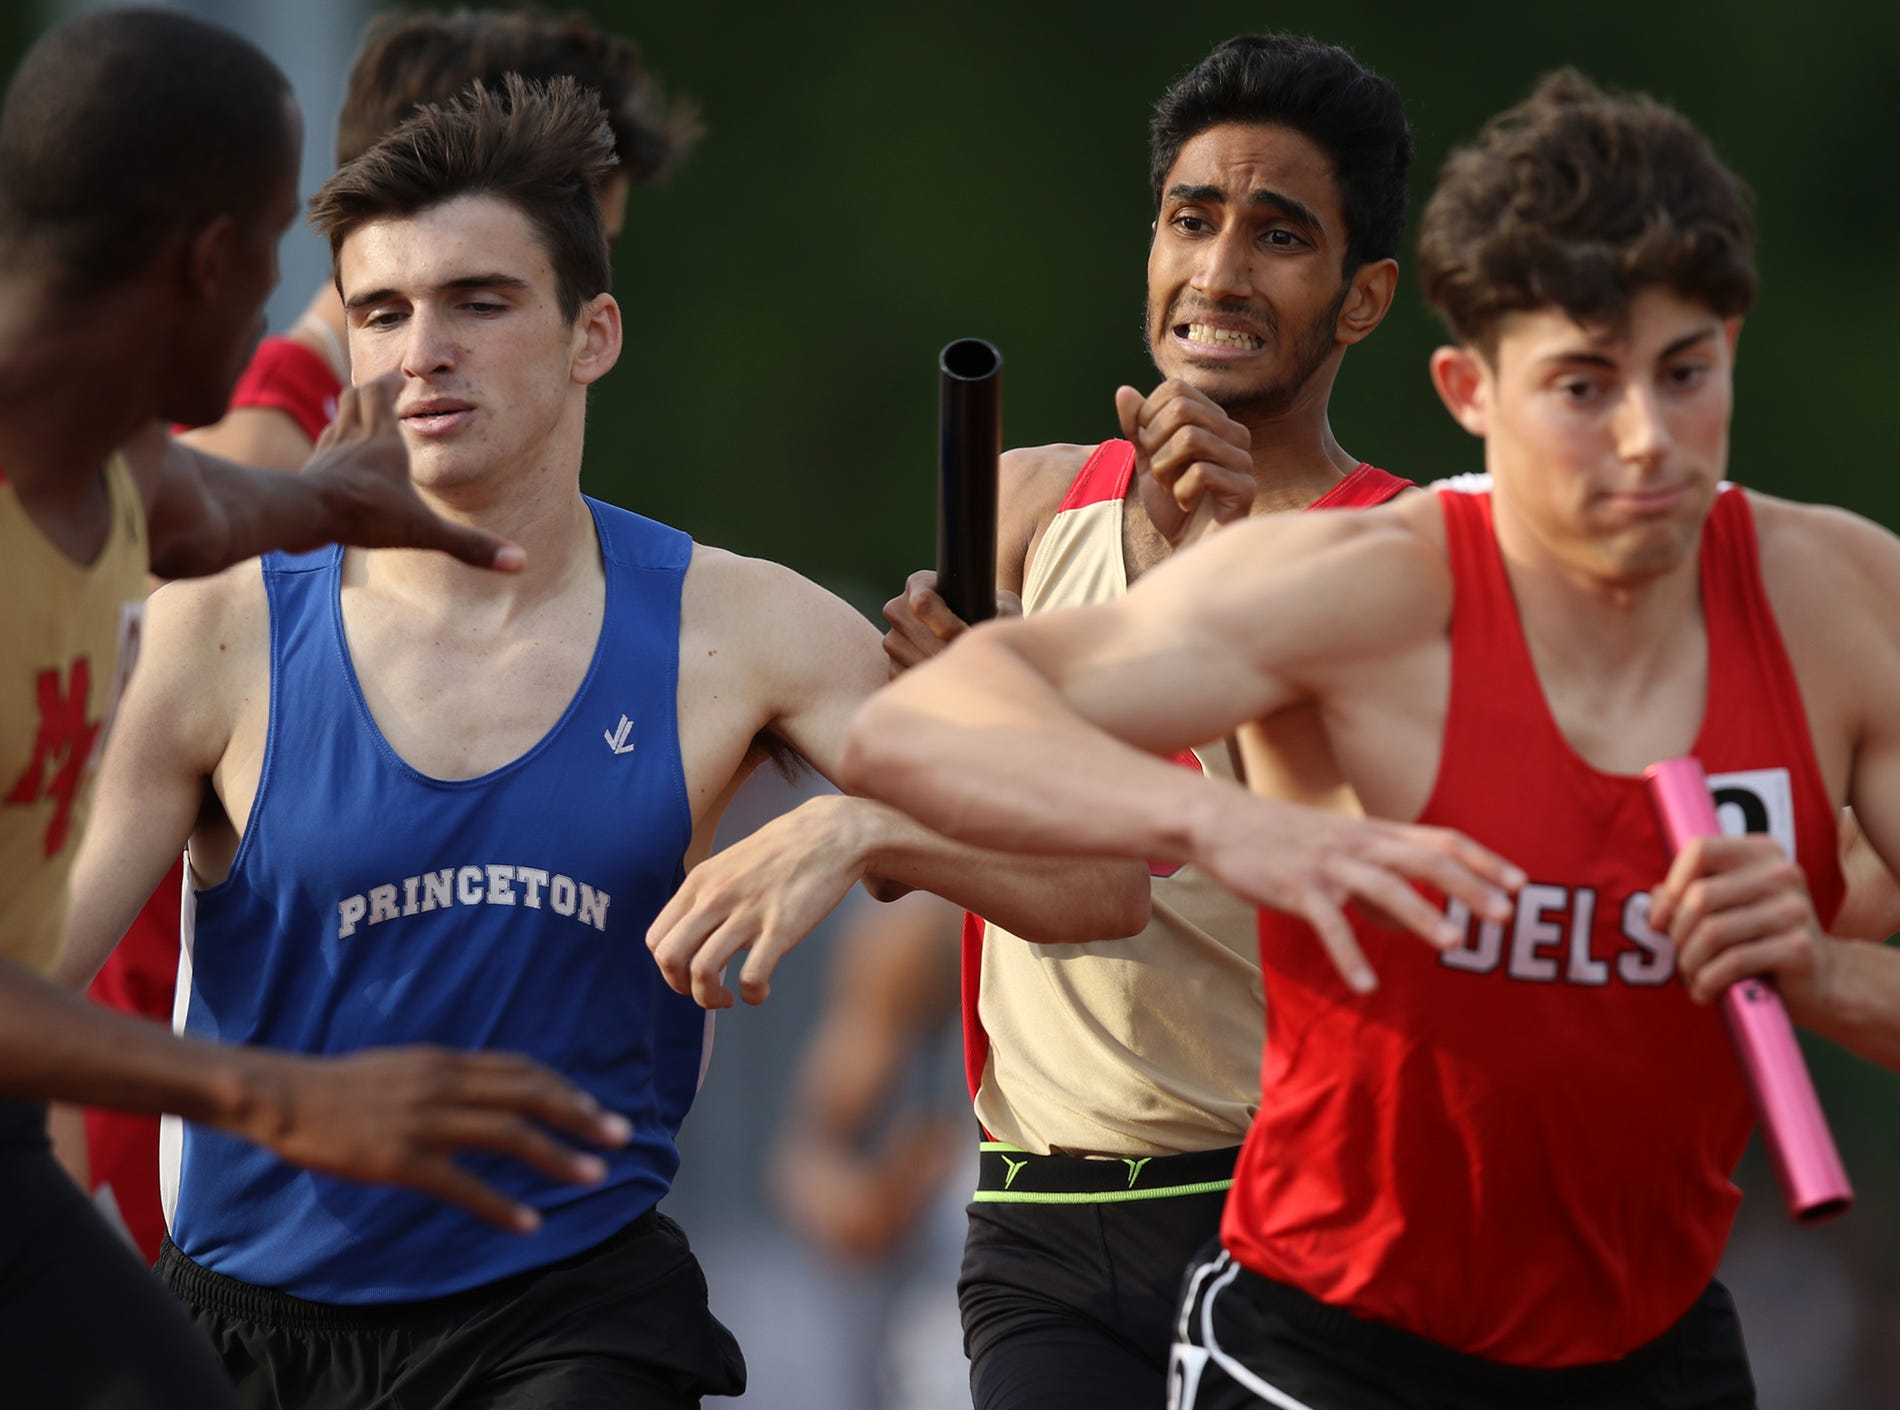 Jaymin Mistry, of Mount Olive, tries to get the baton to Nashawn Vazquez for the anchor leg.  The team came in second place with a time of 7:47. Saturday, June 9, 2018